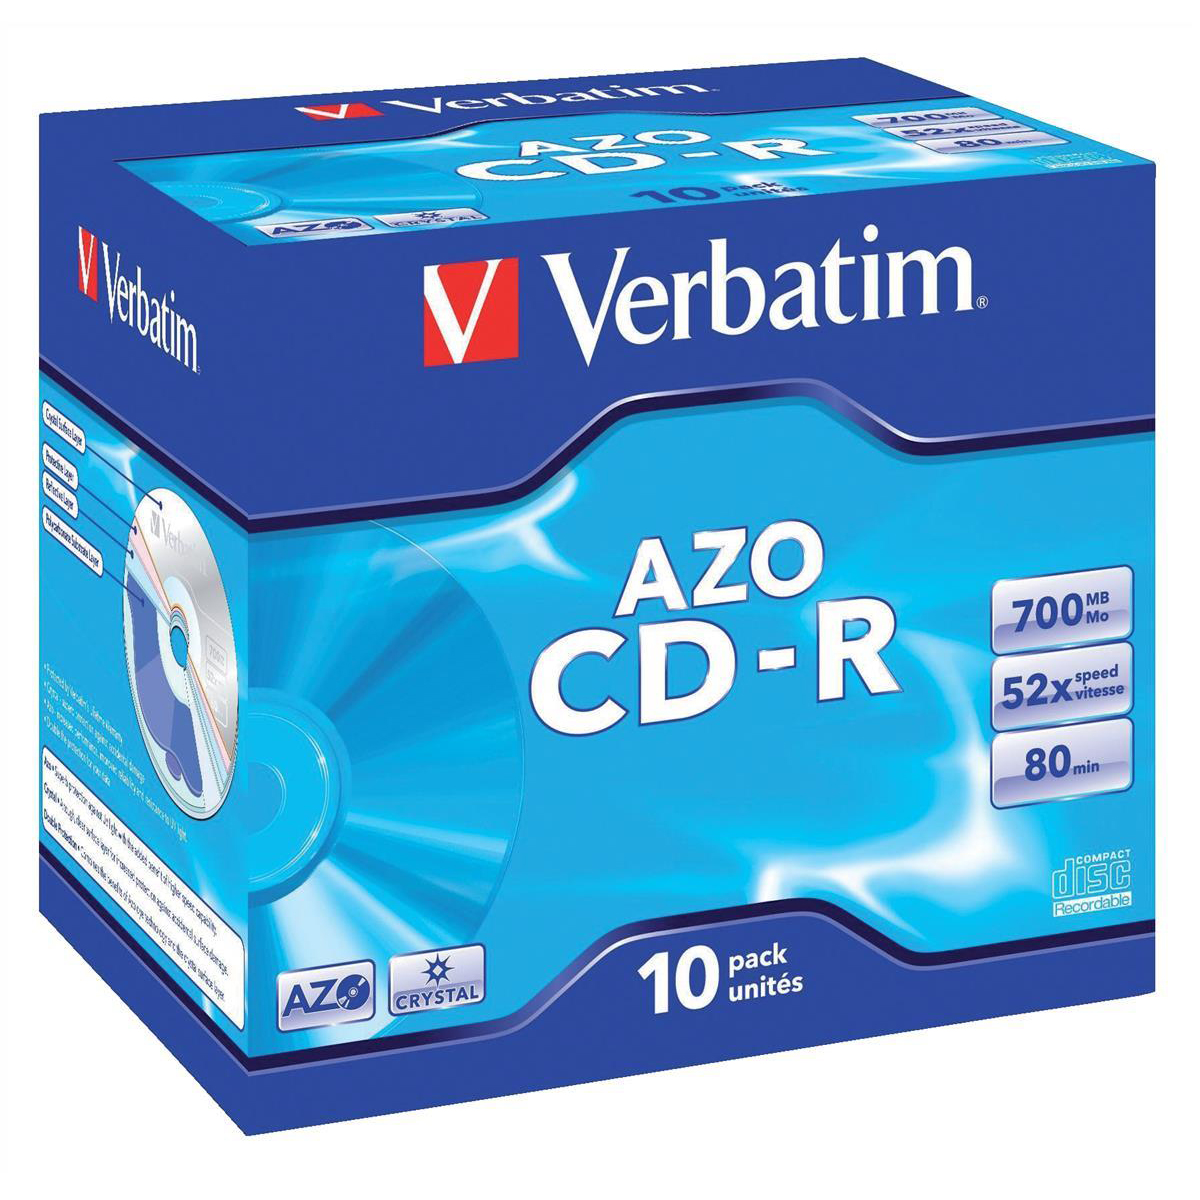 Verbatim CD-R Recordable Disk Write-once Cased 52x Speed 80 Min 700Mb Ref 43327 Pack 10